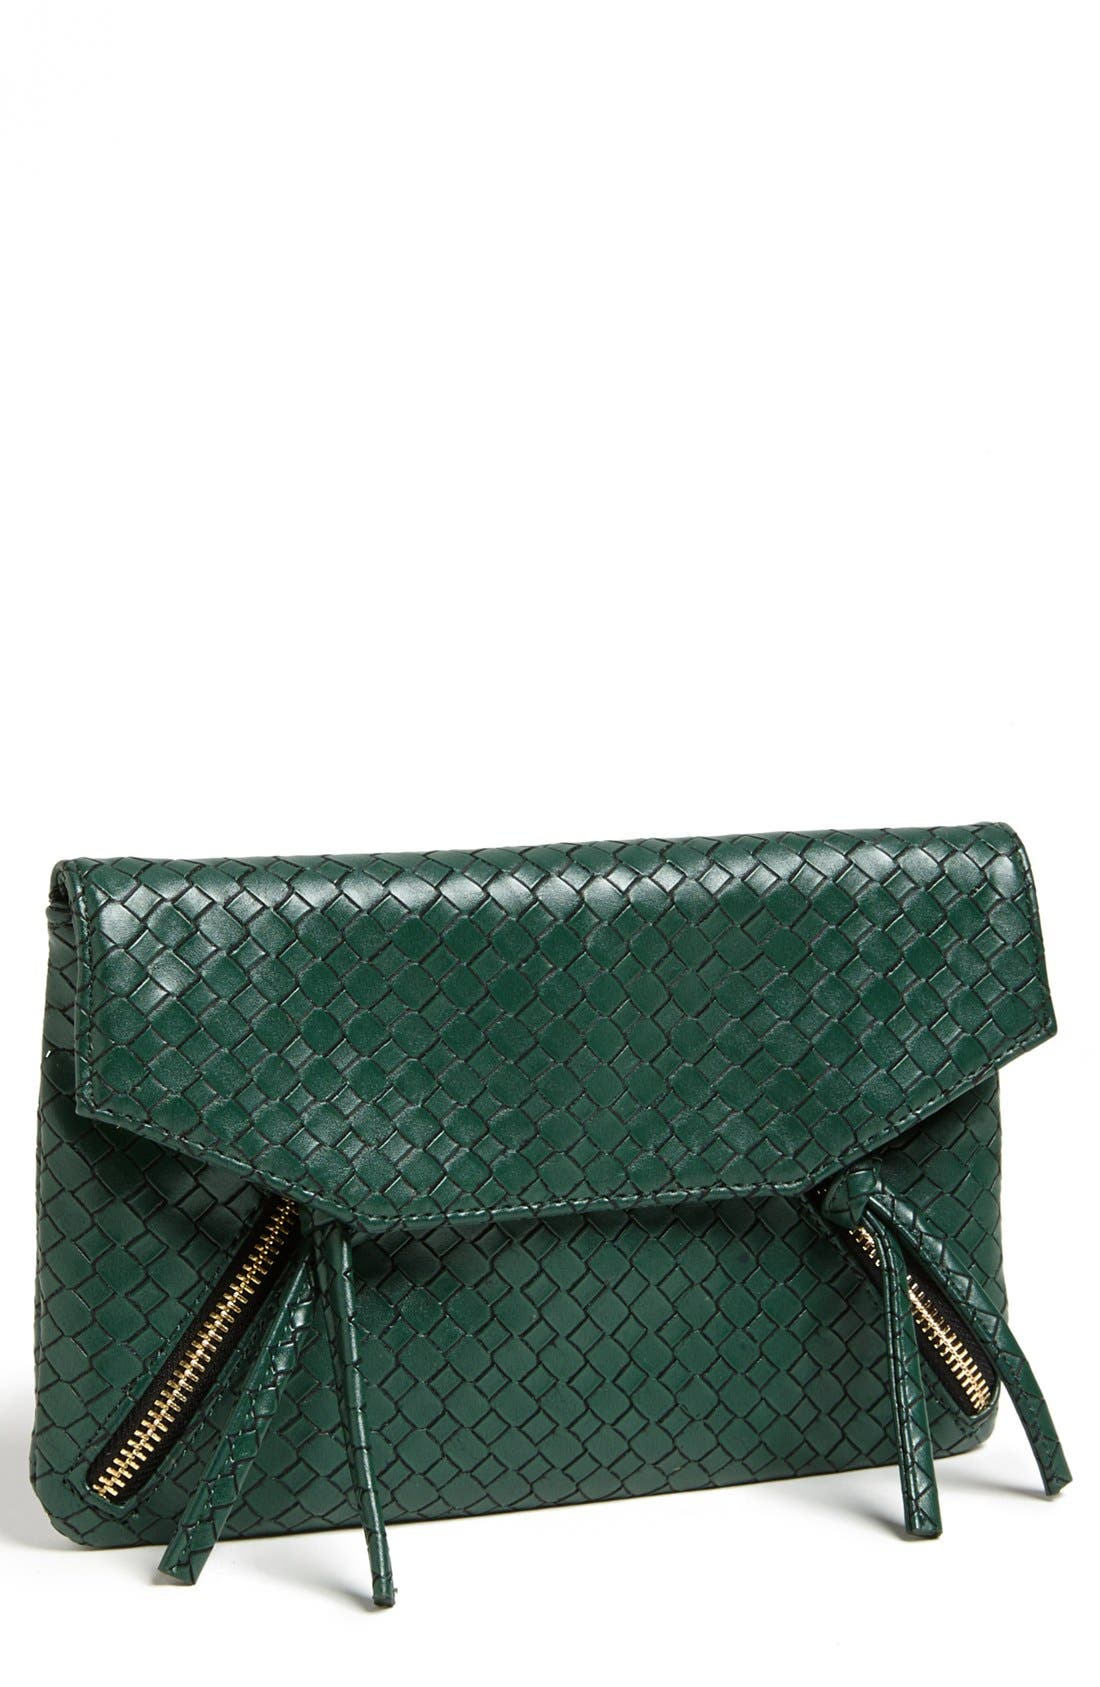 Alternate Image 1 Selected - pretty ships 'Cayenne' Woven Clutch